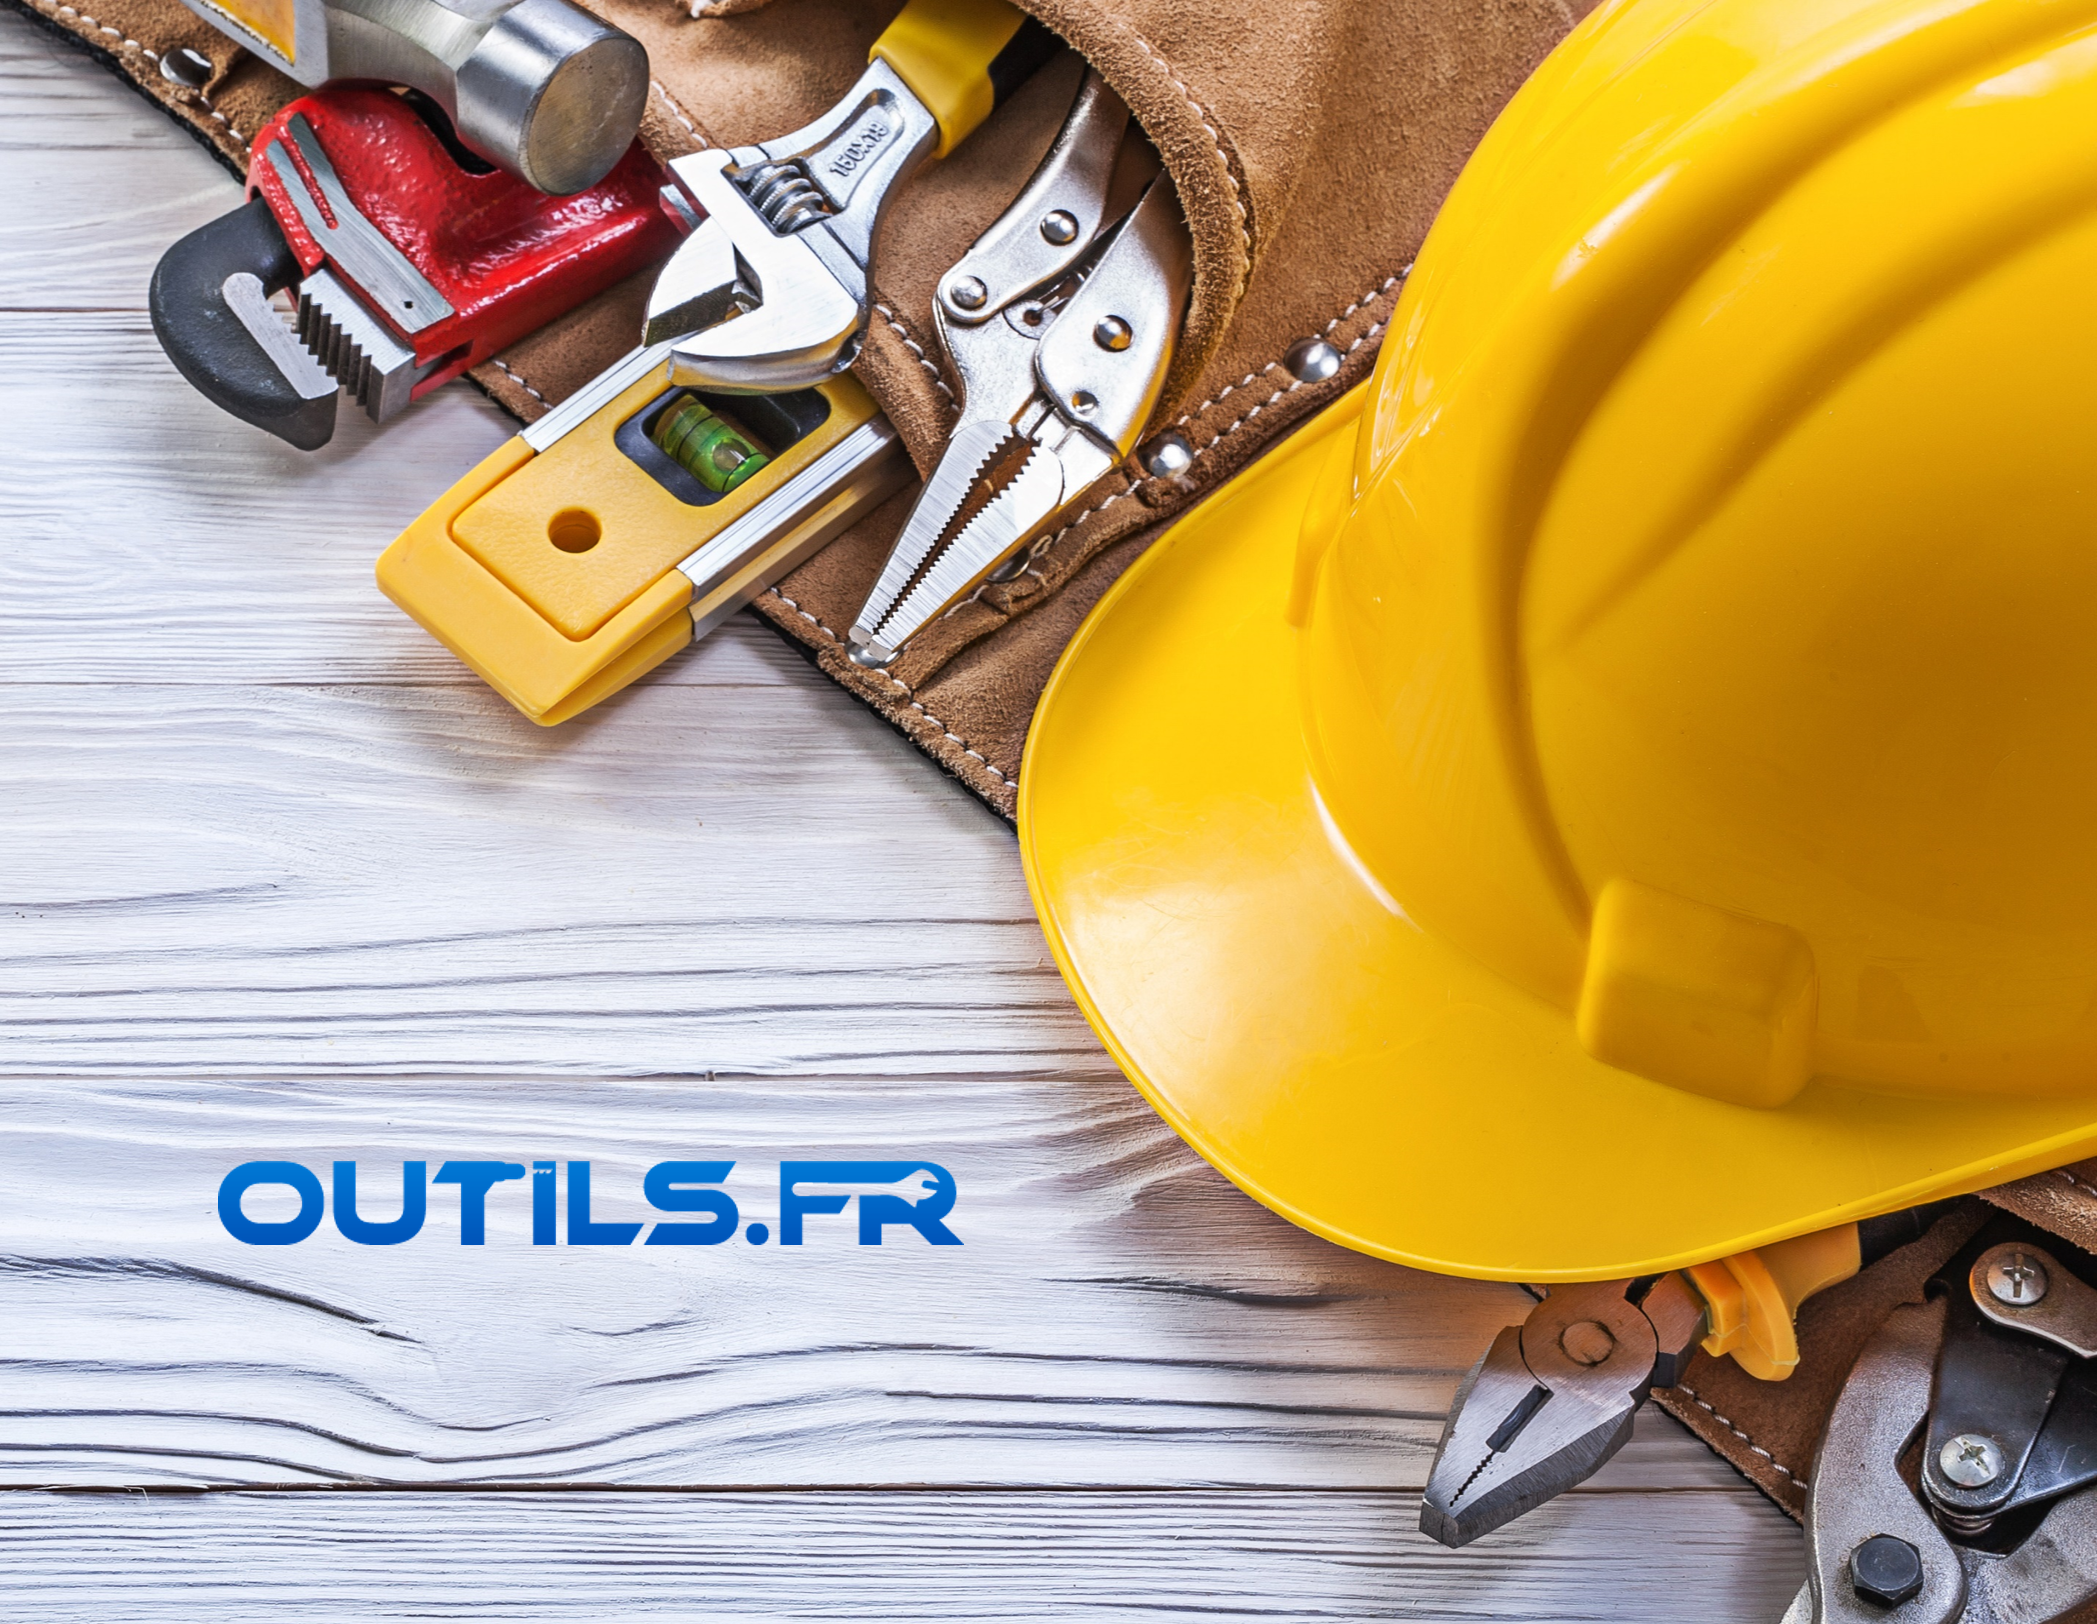 ref-outils.fr